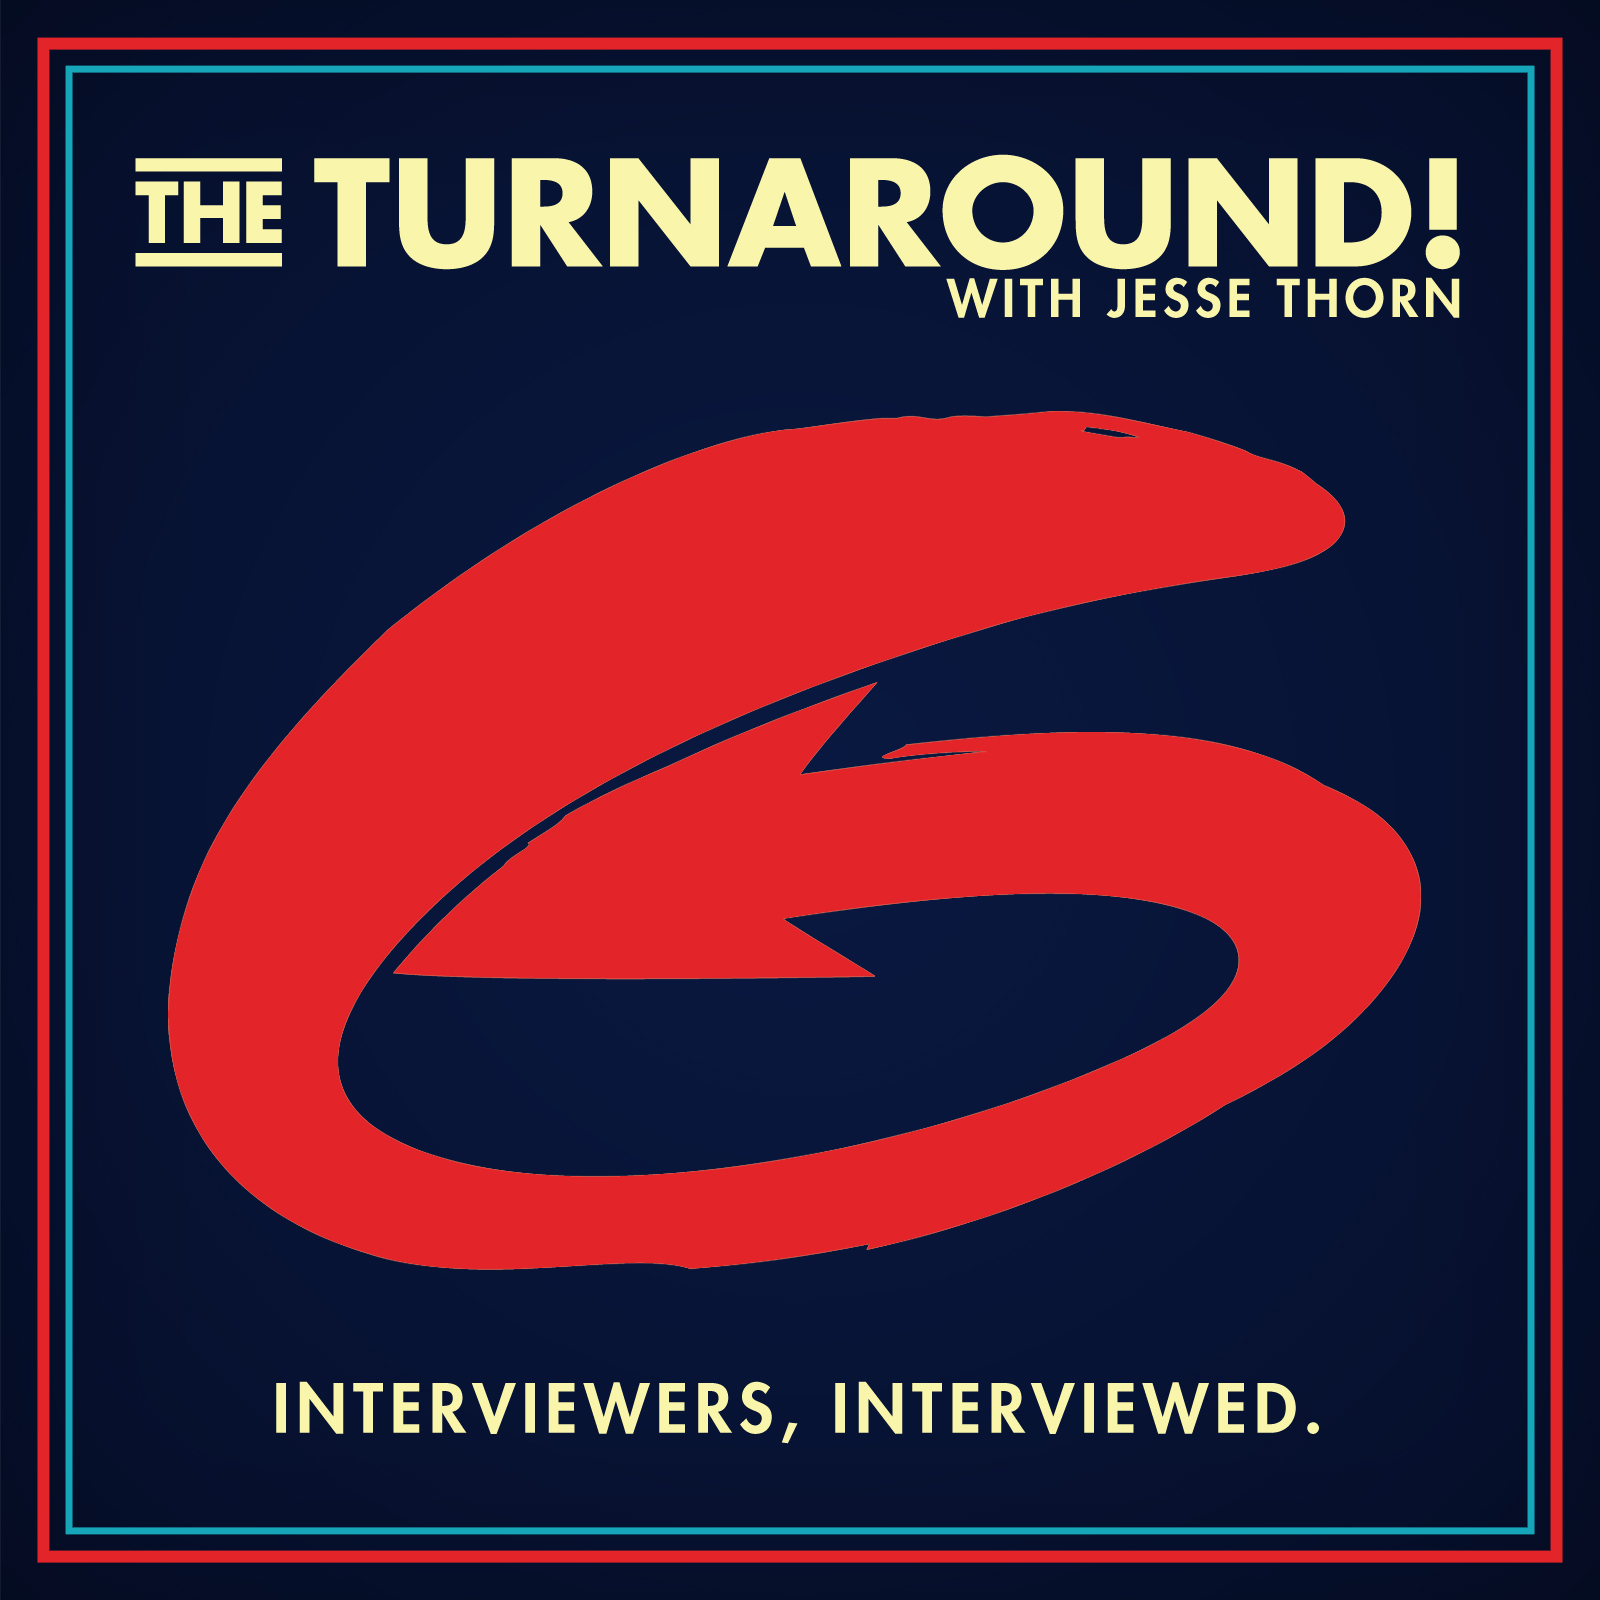 Artwork for The Turnaround with Dick Cavett